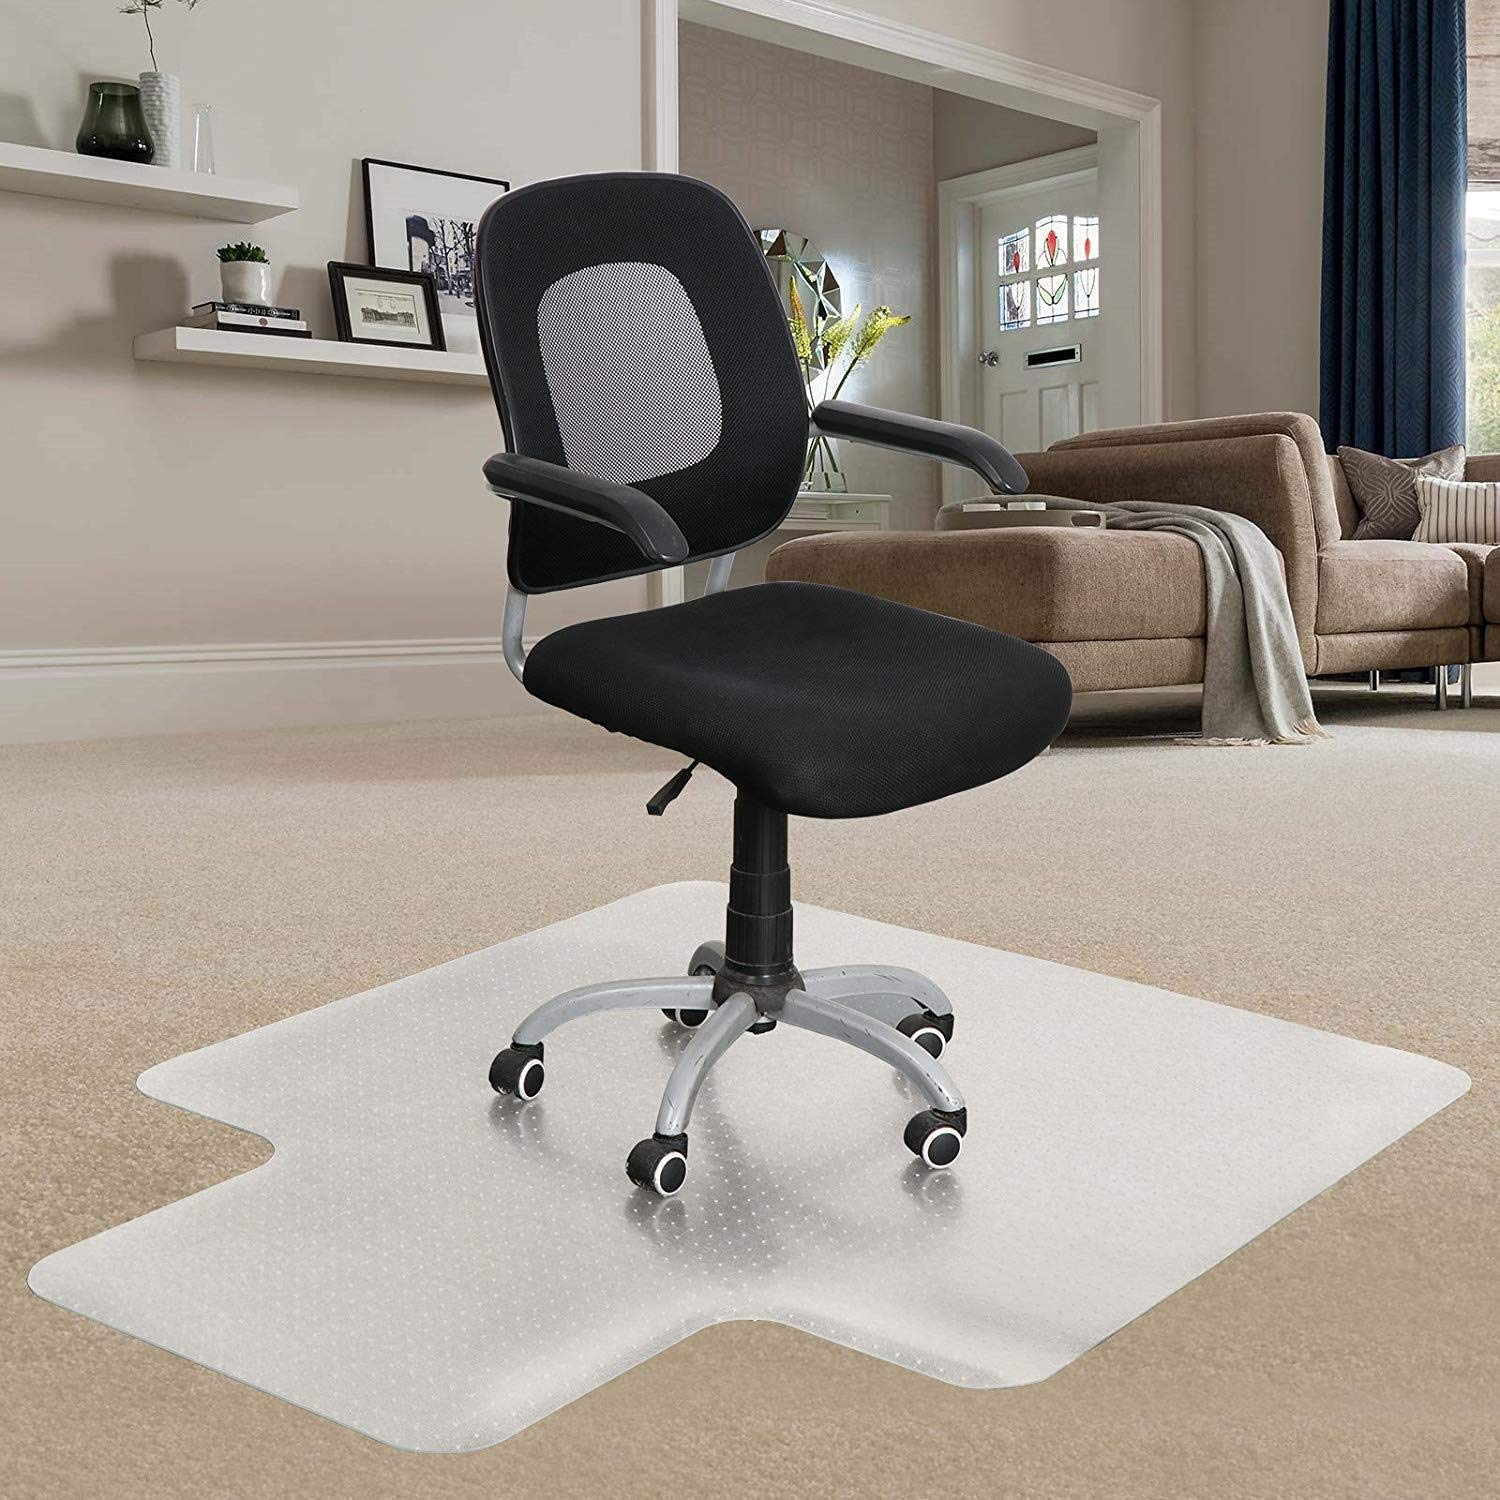 heavy duty office chair mat for carpet soccer team chairs cheap find deals on line at get quotations homgarden sturdy highly transparent low and medium pile carpets 36